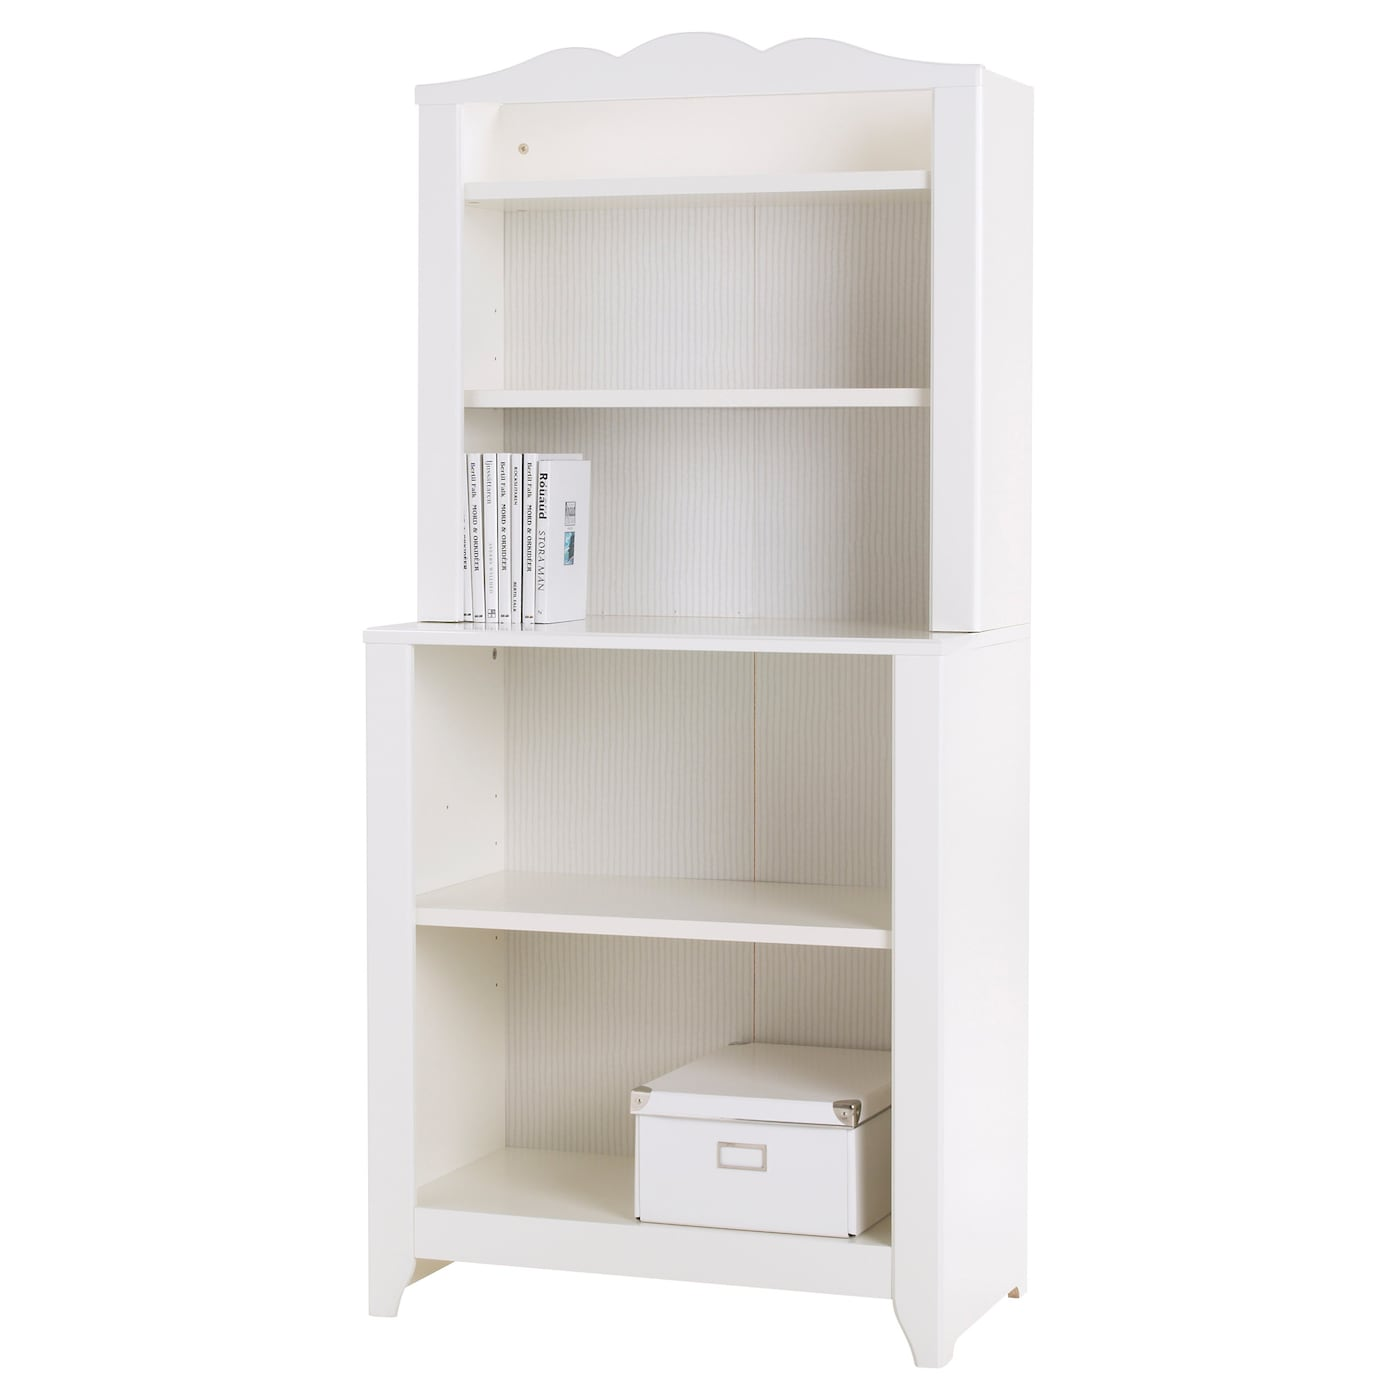 Kinderbett ikea hensvik  HENSVIK Cabinet with shelf unit White 75x161 cm - IKEA